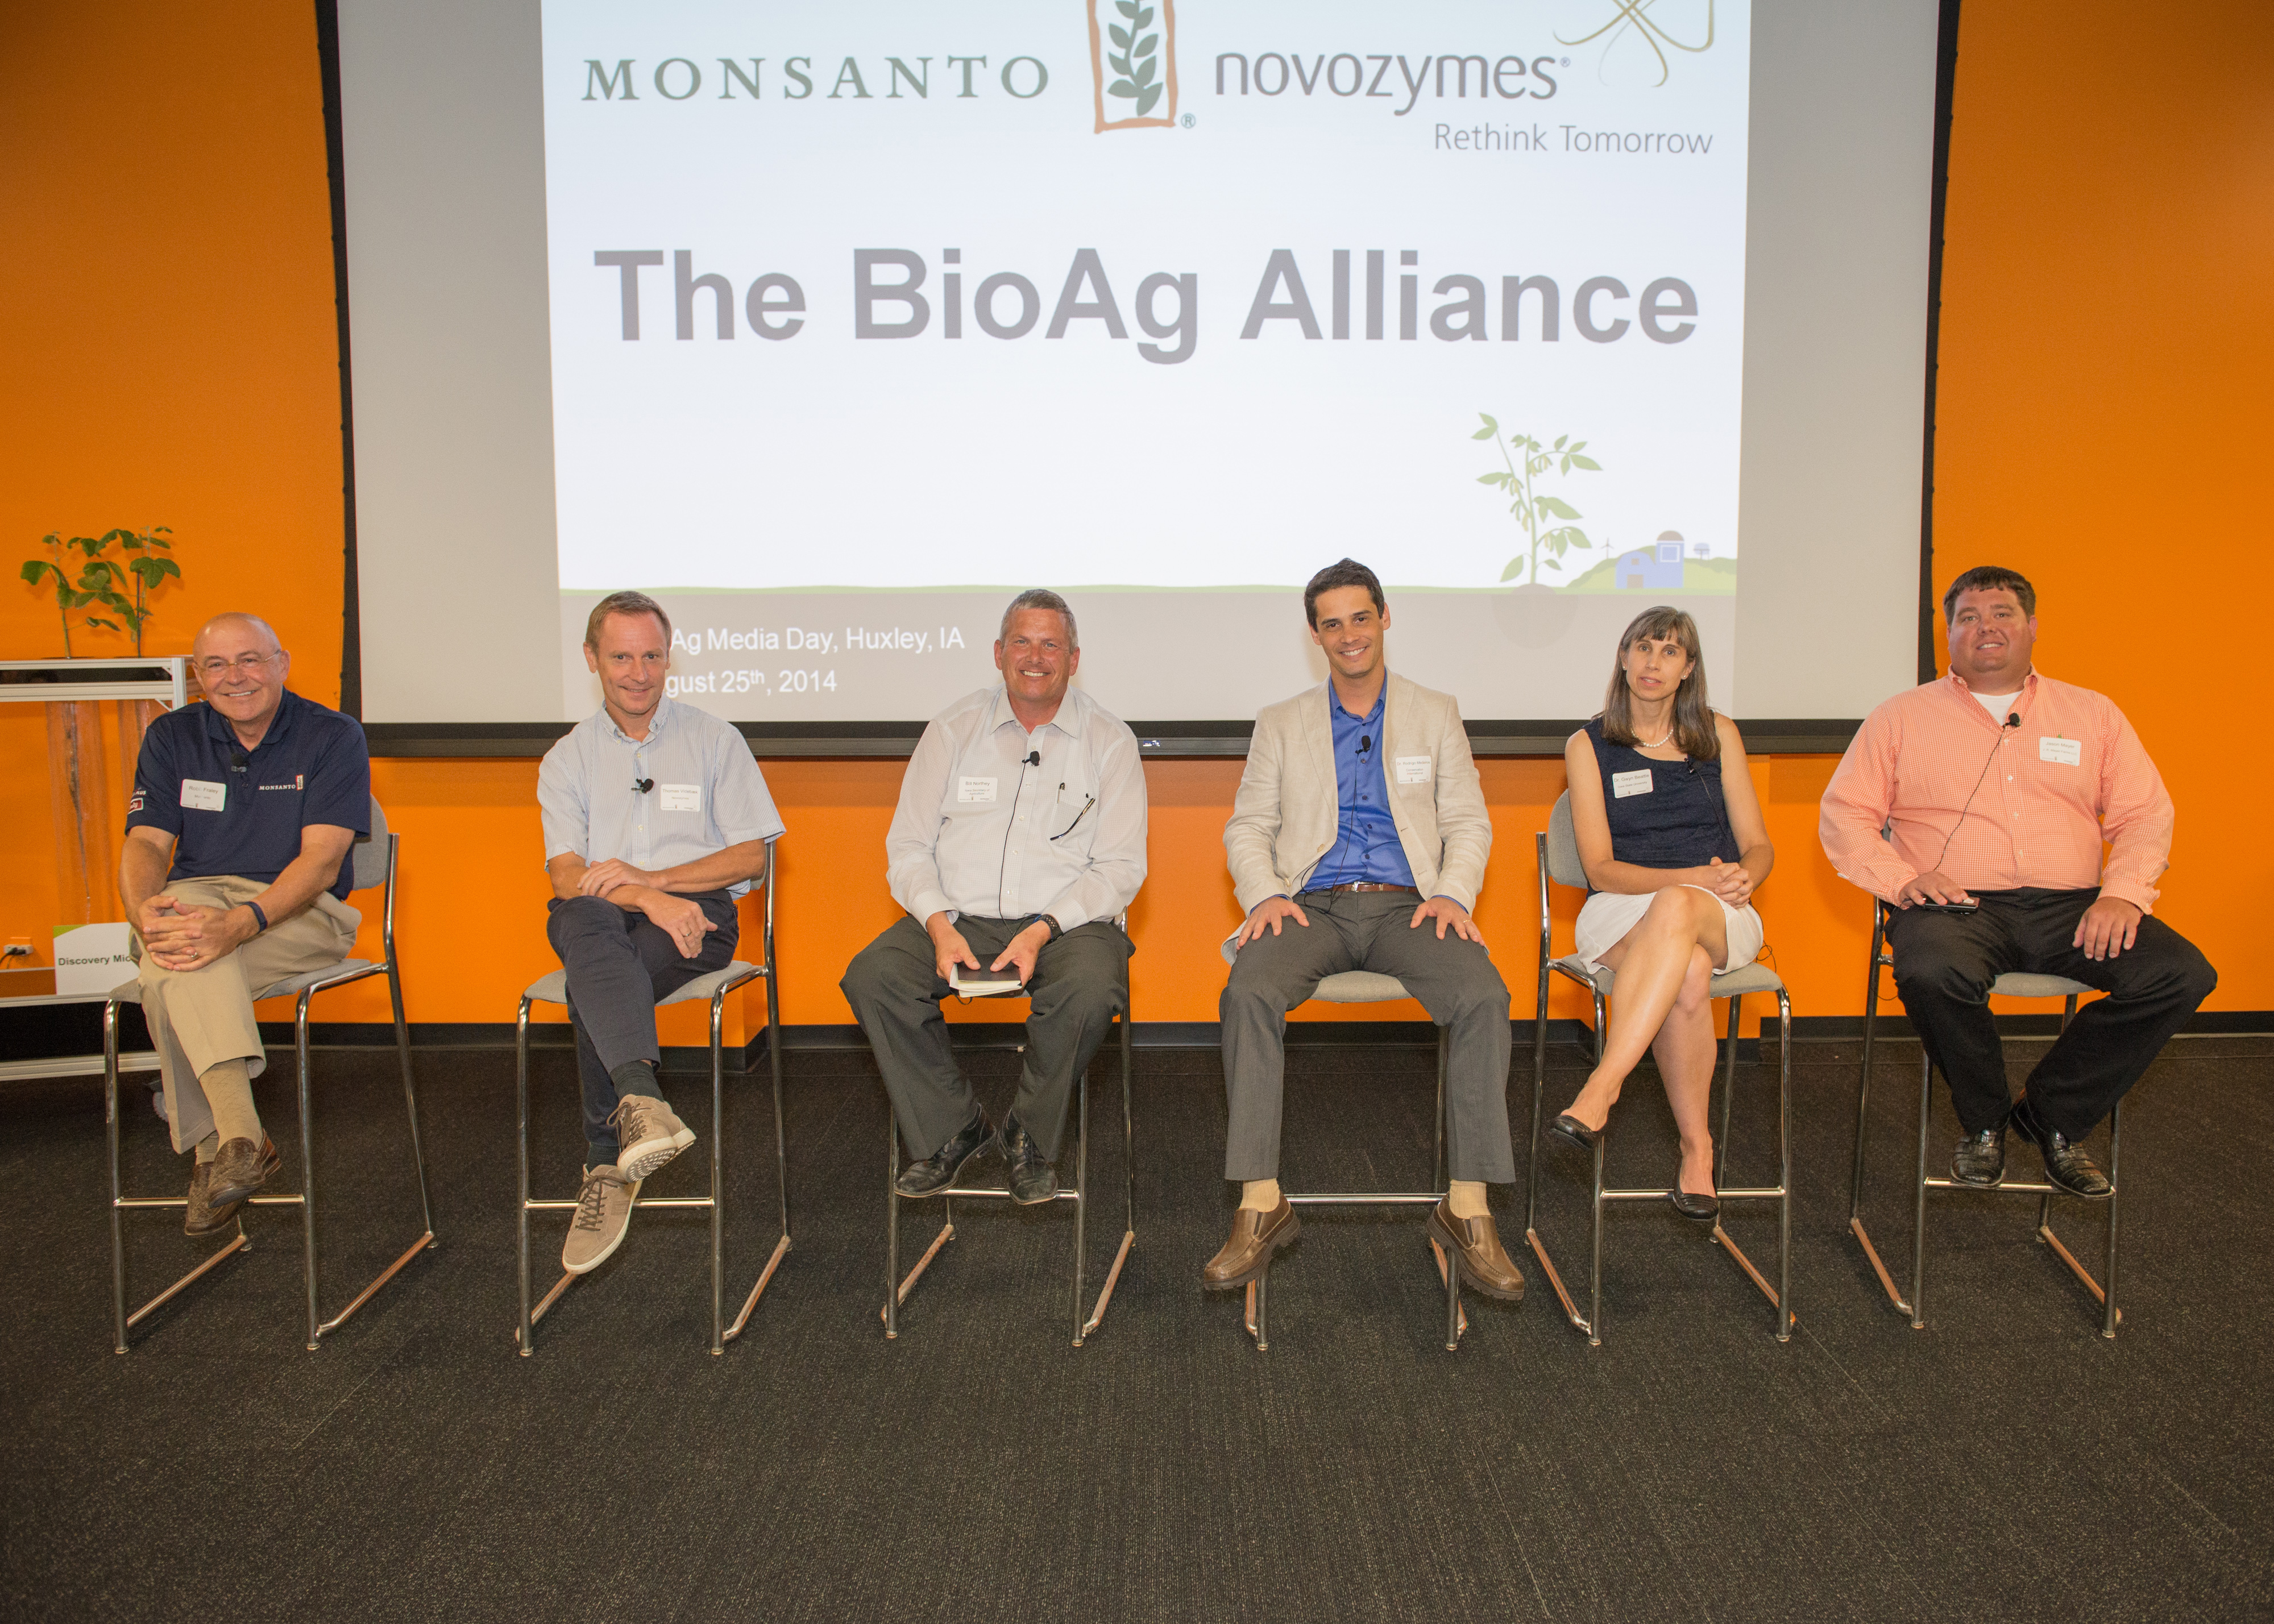 Novozymes and Monsanto convene a panel of experts in Huxley, Iowa, to discuss microbial agricultural solutions that can help farmers address future challenges in a sustainable way. Panelists (from left to right) include: Robb Fraley, EVP and CTO at Monsanto; Thomas Videbæk, EVP at Novozymes; Bill Northey, Iowa secretary of agriculture; Dr. Rodrigo Medeiros, senior director for science of Conservation International´s Americas Field Division; Dr. Gwyn Beattie, distinguished professor at Iowa State University; Jason Mayer, J. R. Mayer Farms LLC. (Photo: Business Wire)